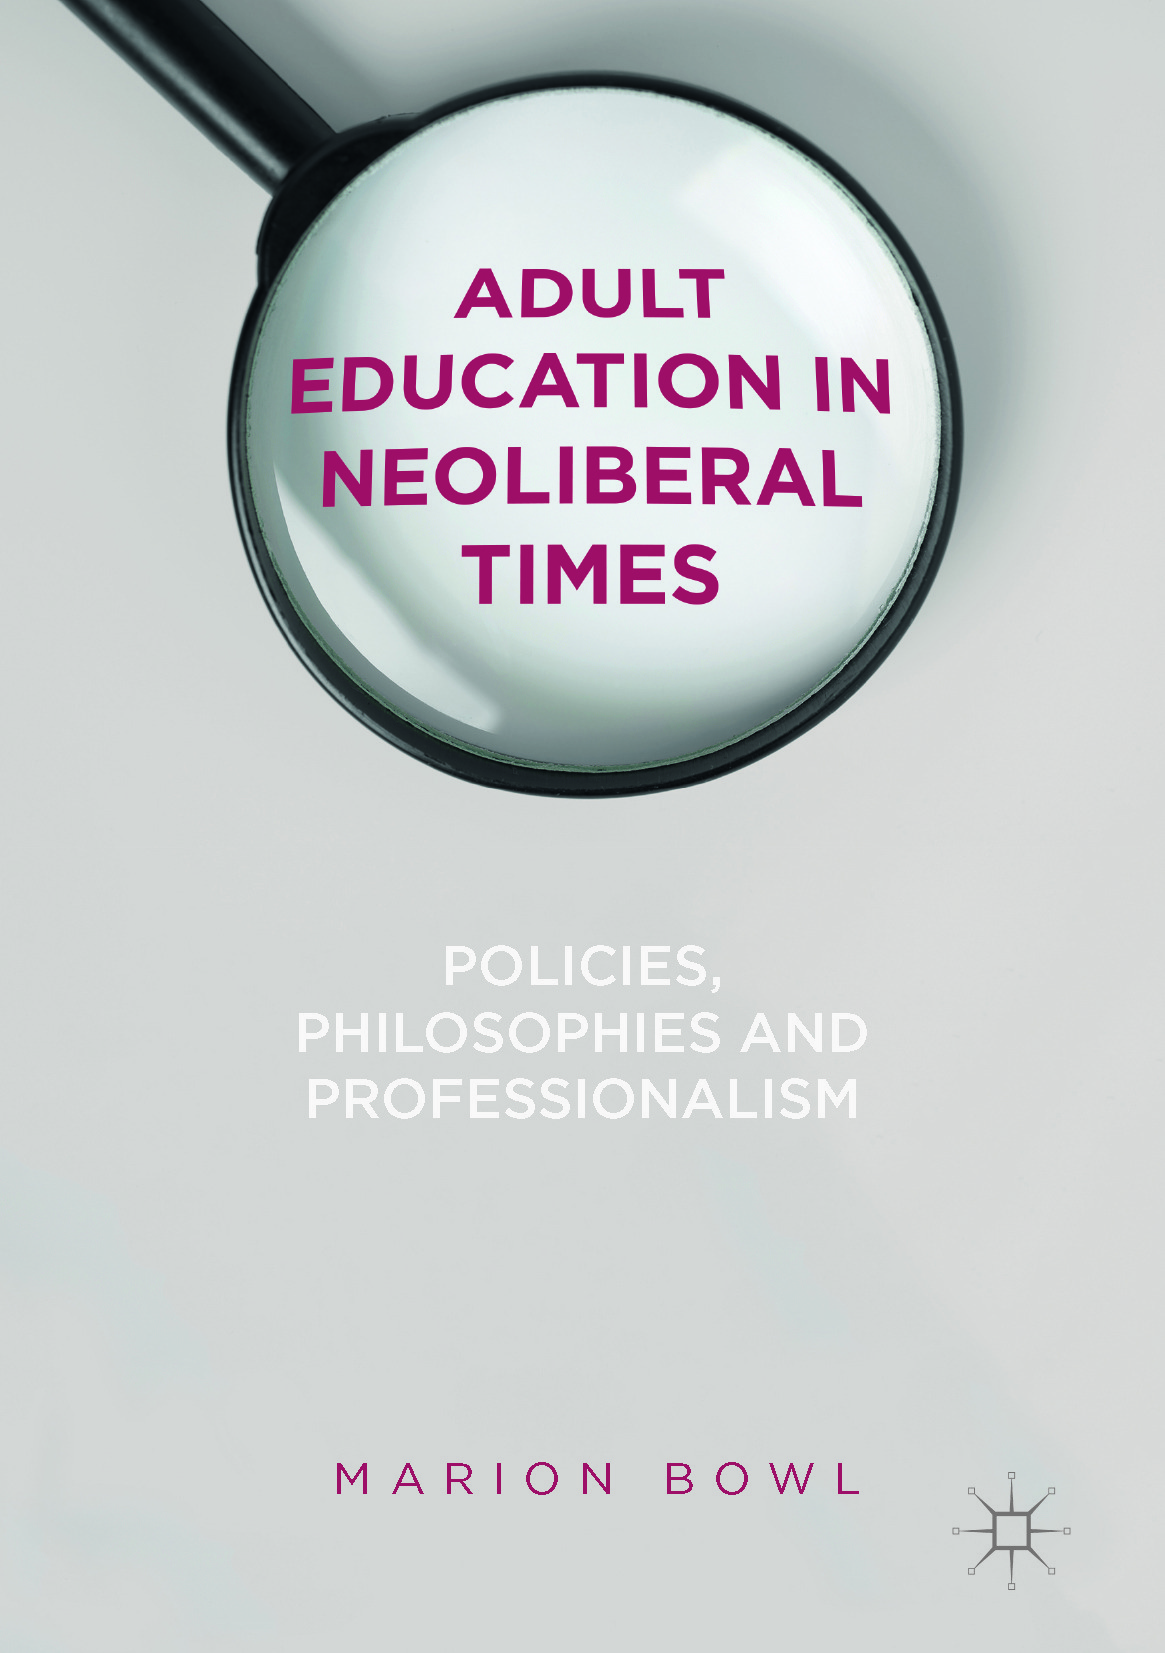 Bowl, Marion - Adult Education in Neoliberal Times, ebook